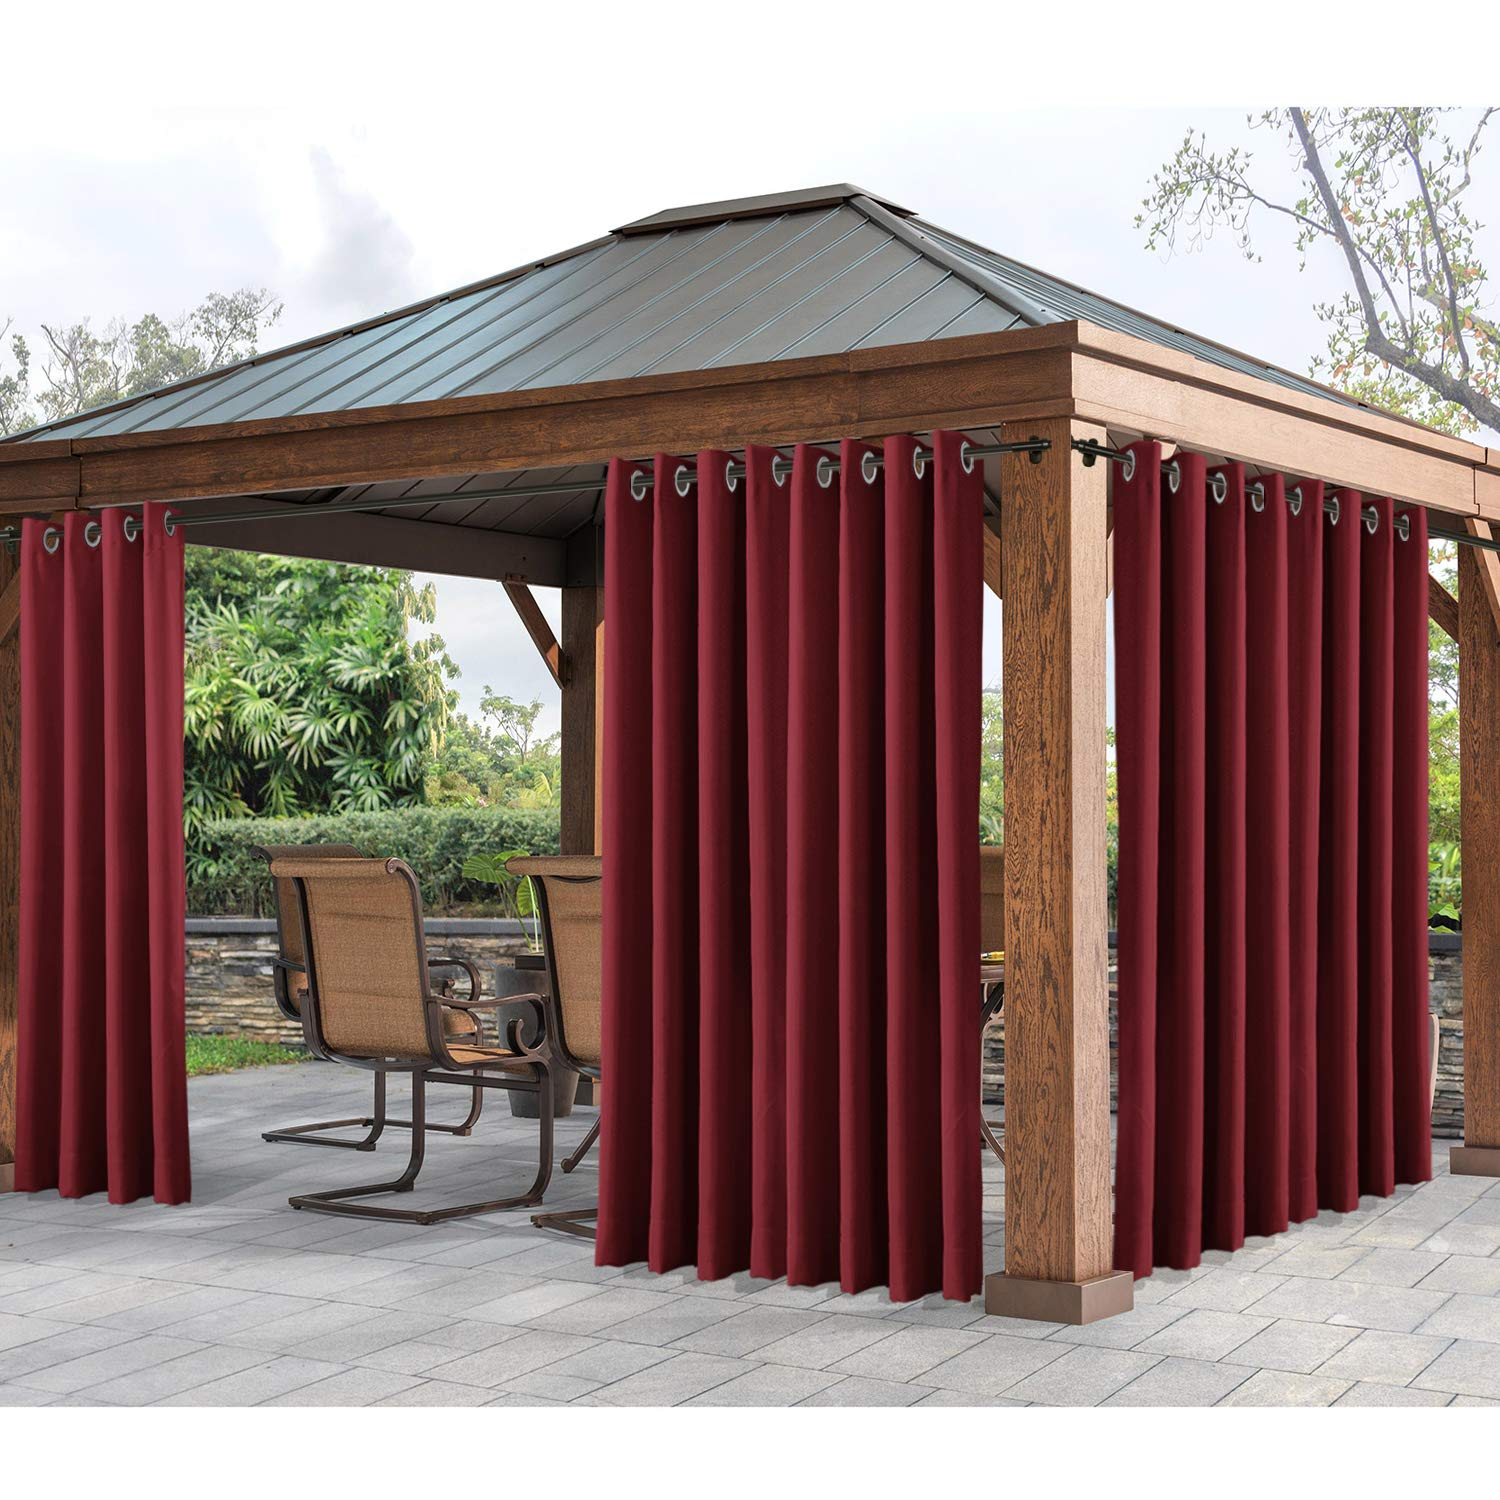 cololeaf Outdoor Curtains for Patio Extra Wide Waterproof Curtain Panels for Porch, Gazebo, Pergola, Cabana, Dock, Beach Home - Grommet - Red 150'' Wx96 L Inch (1 Panel)